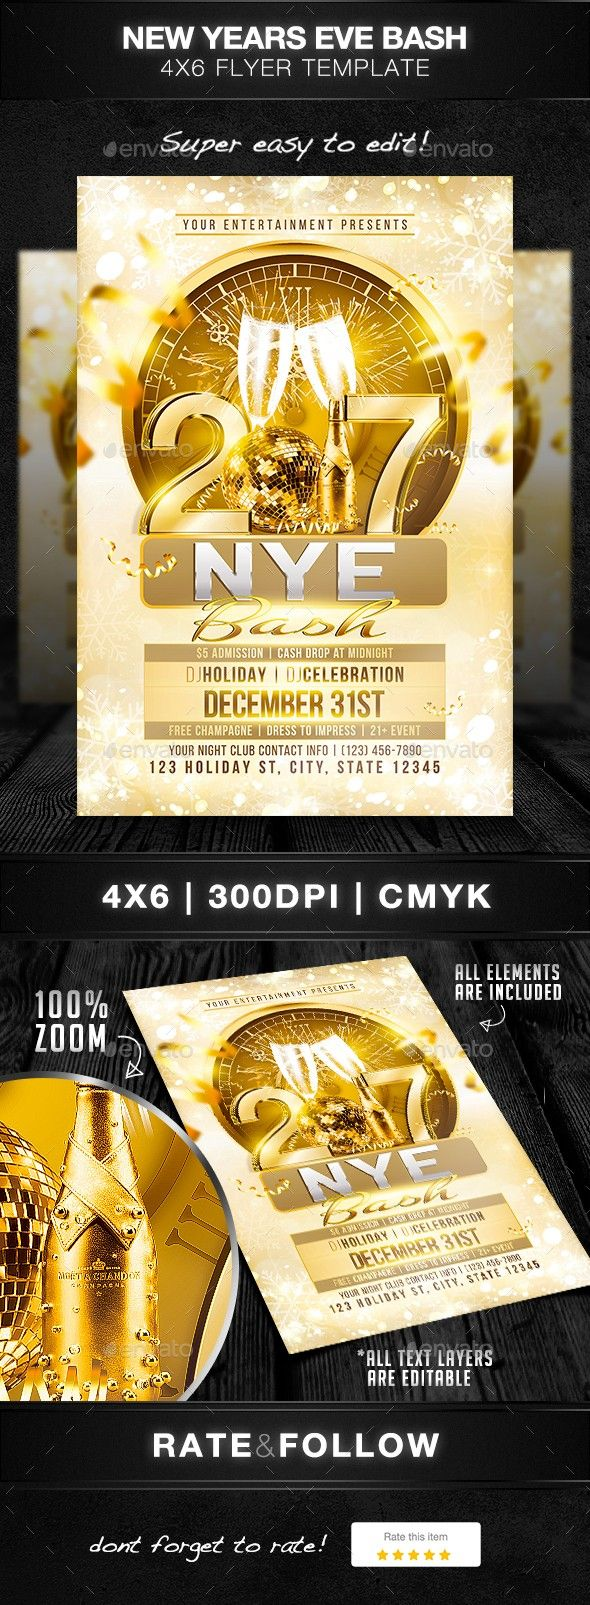 Dance Disco Elegant End Of Year Festive Flyer Template Hot Live Music Luxury Modern New Years Eve